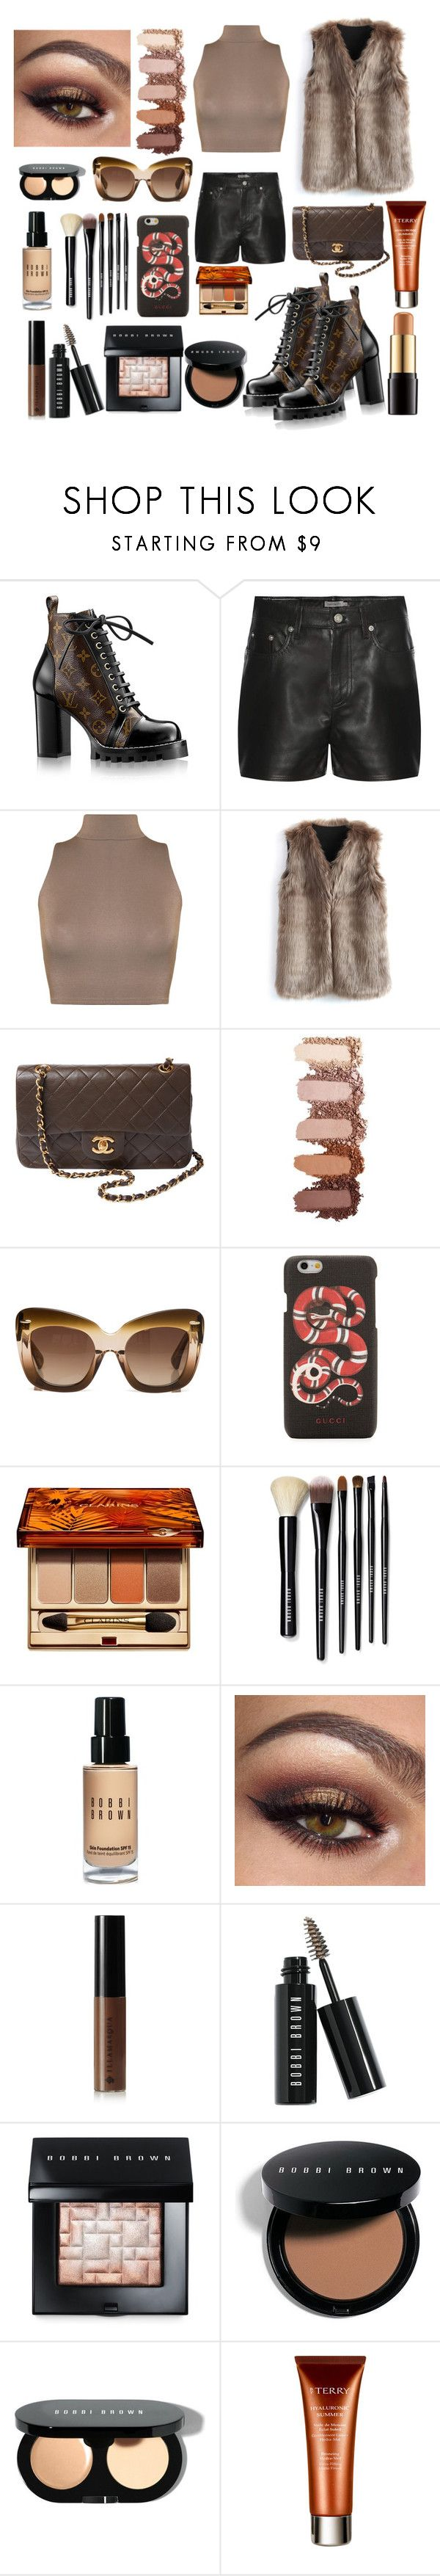 """""""Ms.Jones."""" by comerttaylan ❤ liked on Polyvore featuring Calvin Klein Jeans, WearAll, Chicwish, Chanel, Erdem, Gucci, Clarins, Bobbi Brown Cosmetics, Illamasqua and By Terry"""